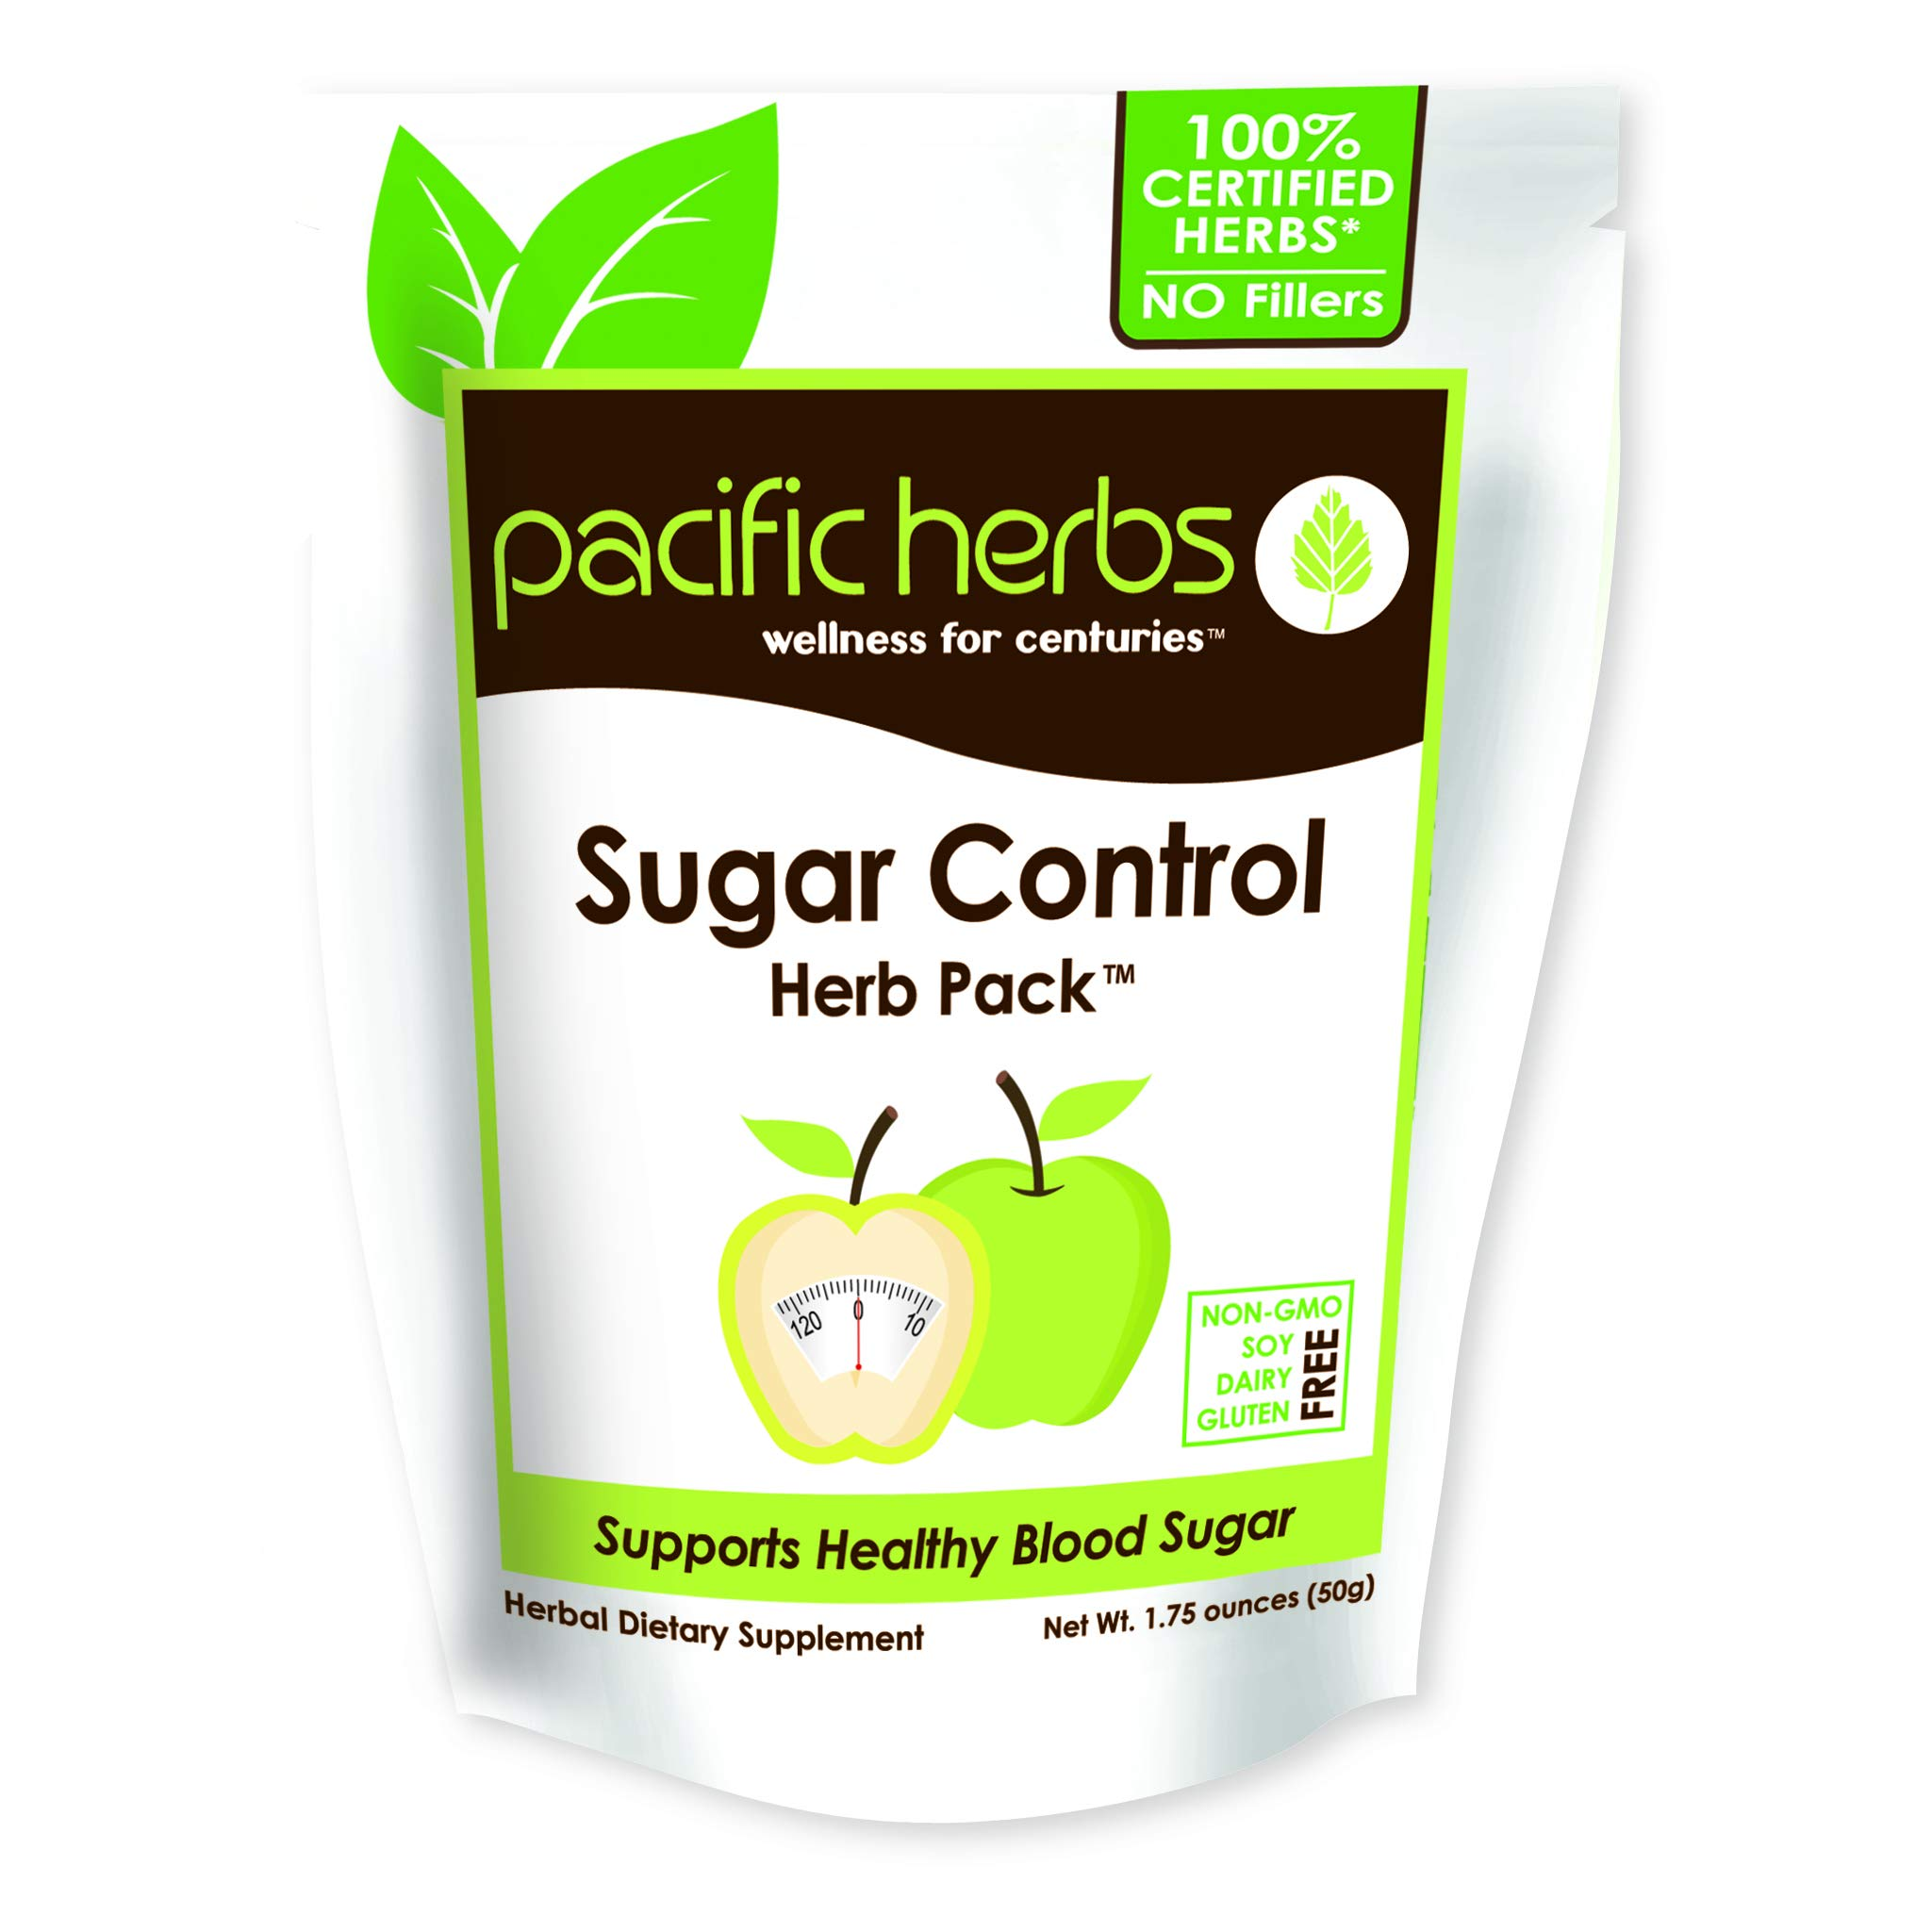 Pacific Herbs Natural Blood Sugar Support Herbs by Pacific Herbs